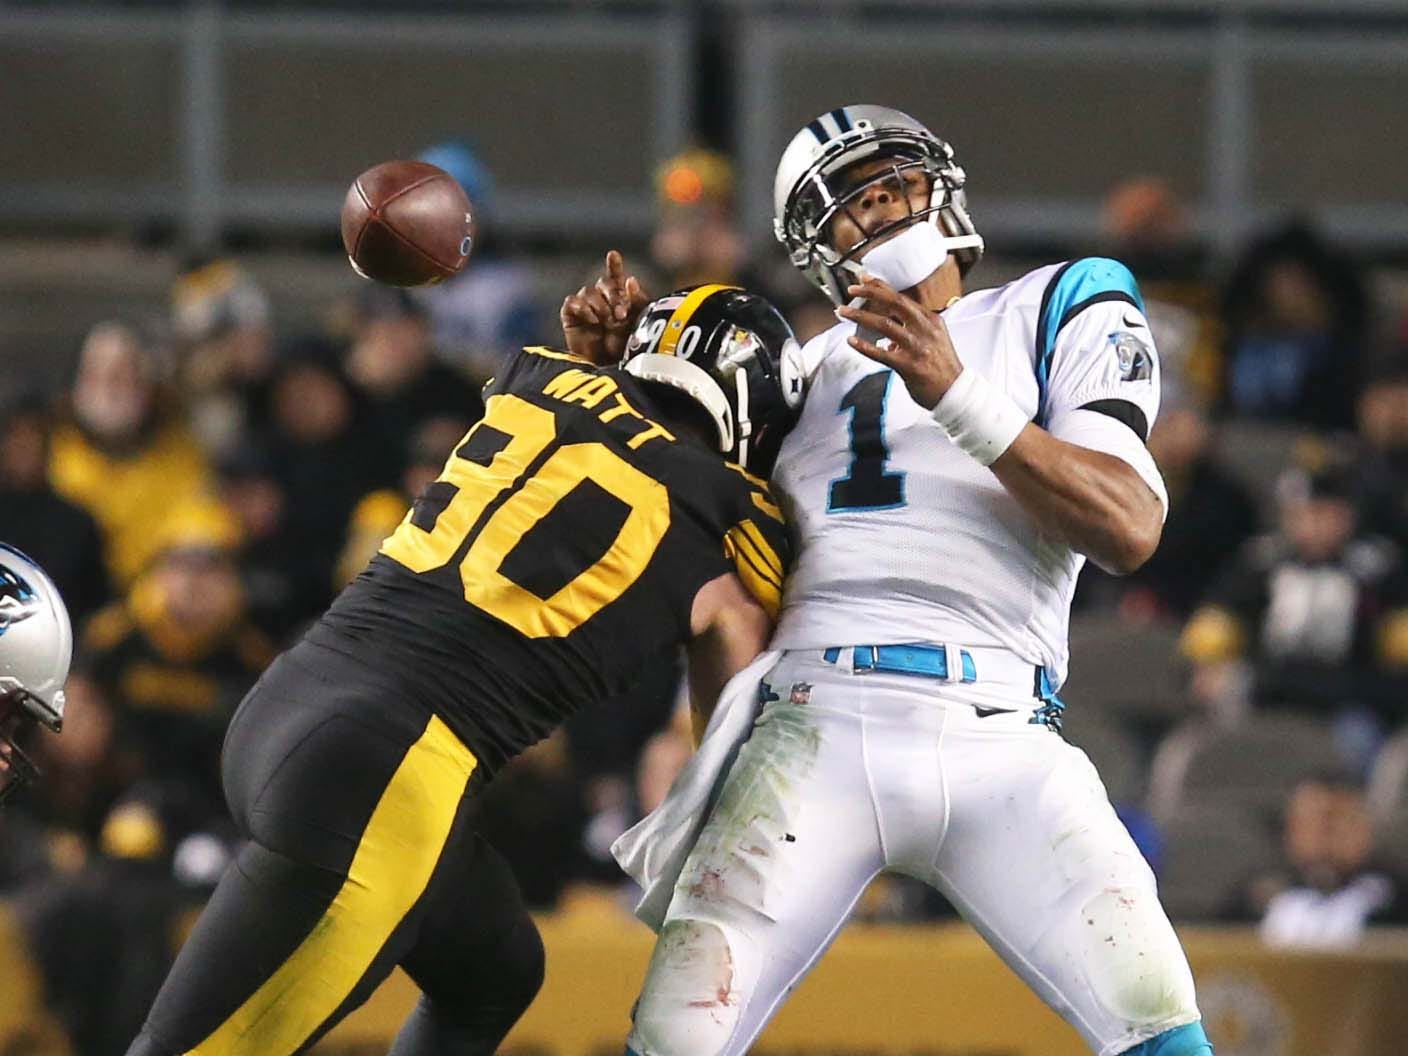 Pittsburgh Steelers outside linebacker T.J. Watt causes Carolina Panthers quarterback Cam Newton to fumble during the second quarter at Heinz Field.